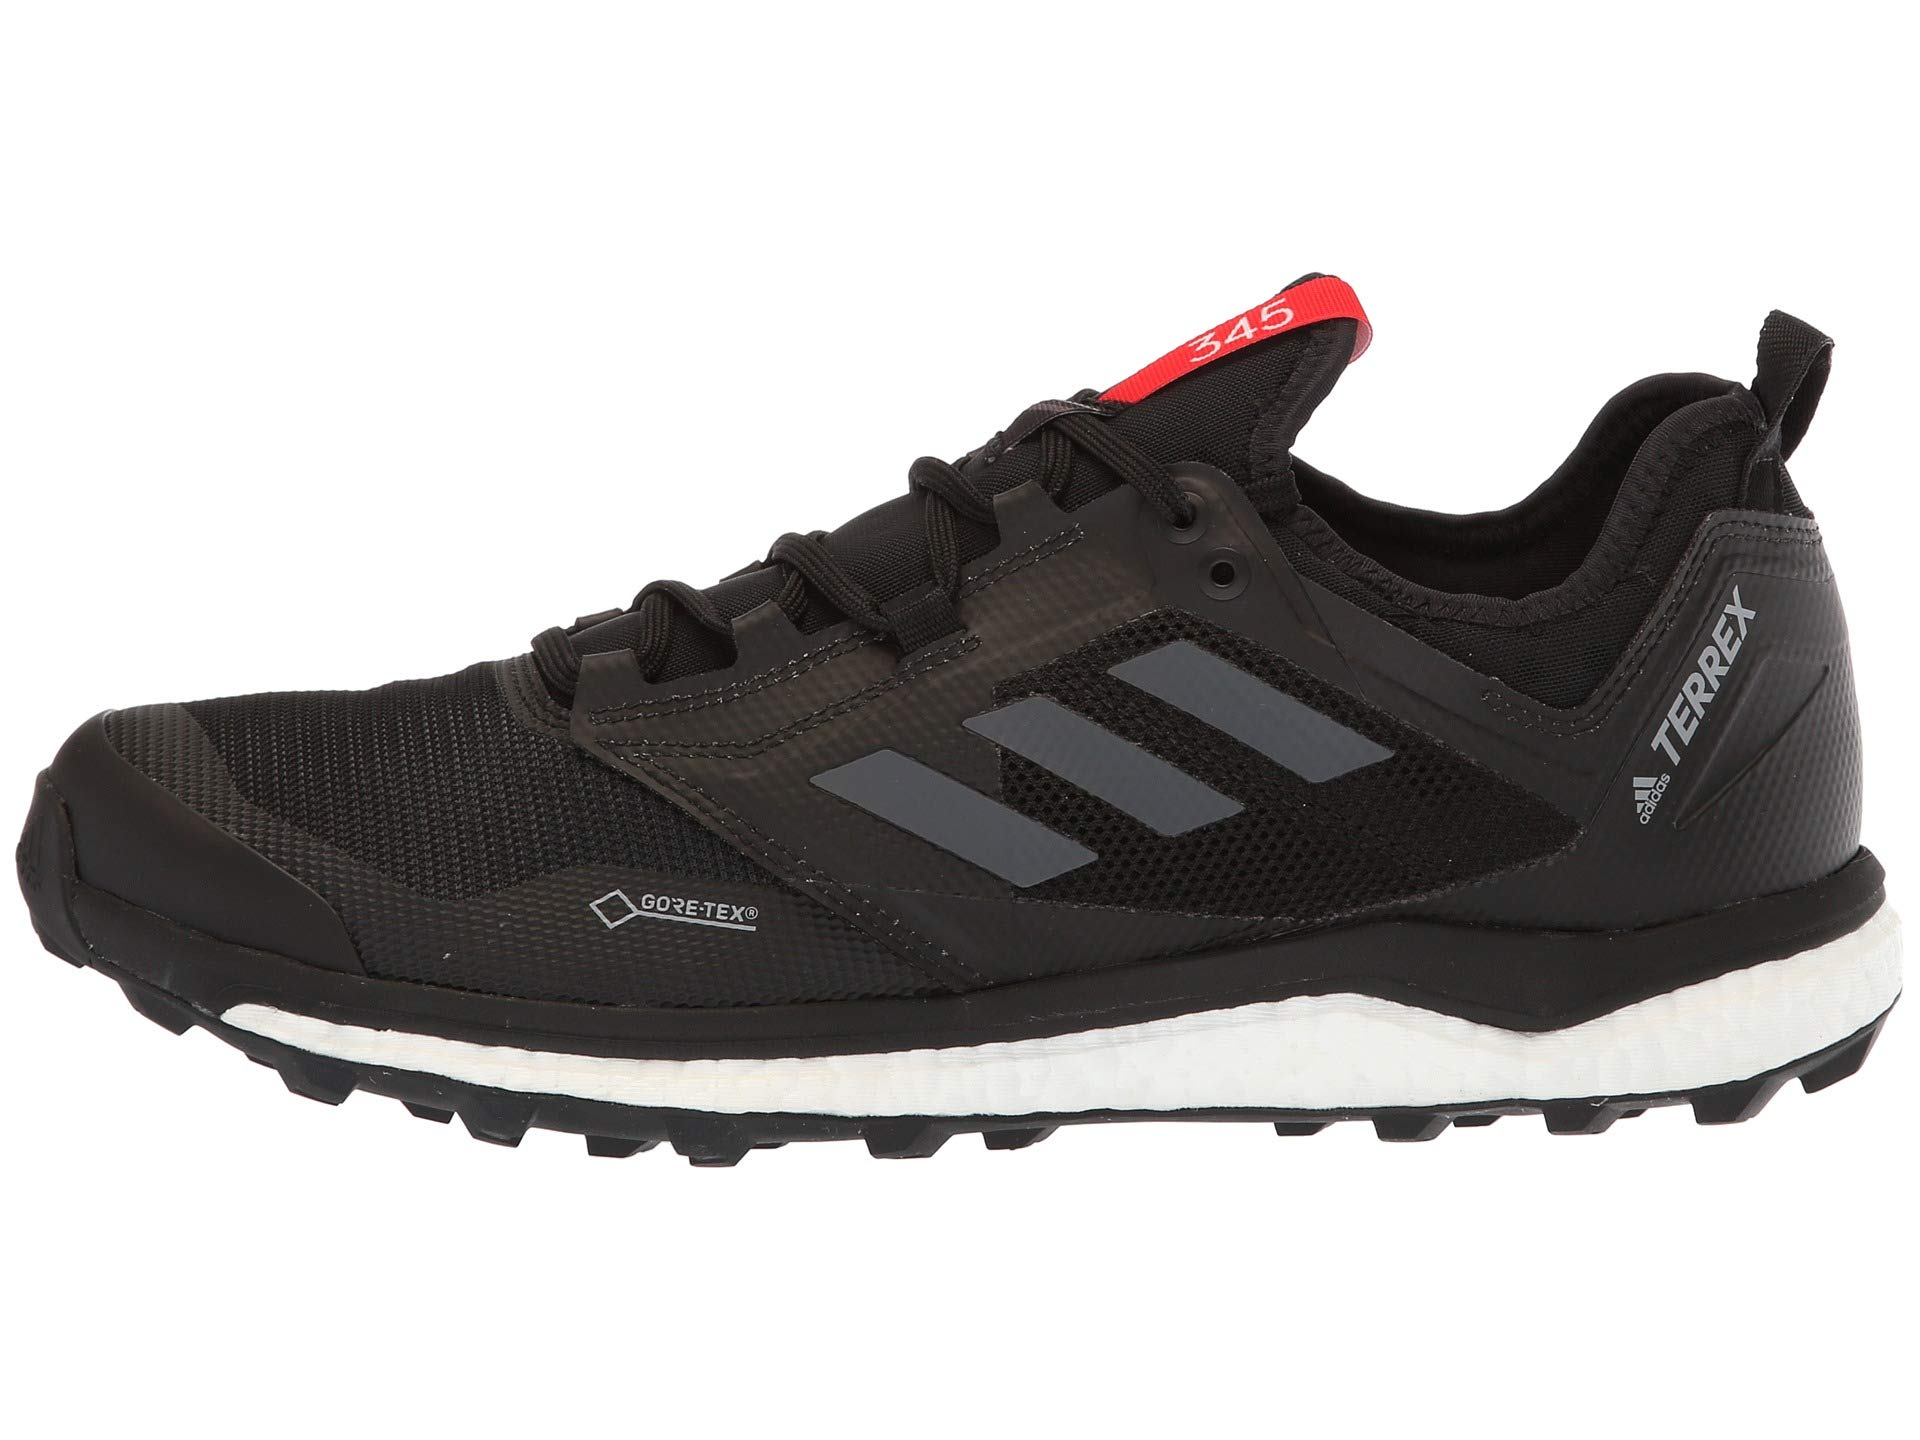 b37ababb1d9 Best Adidas Running Shoes